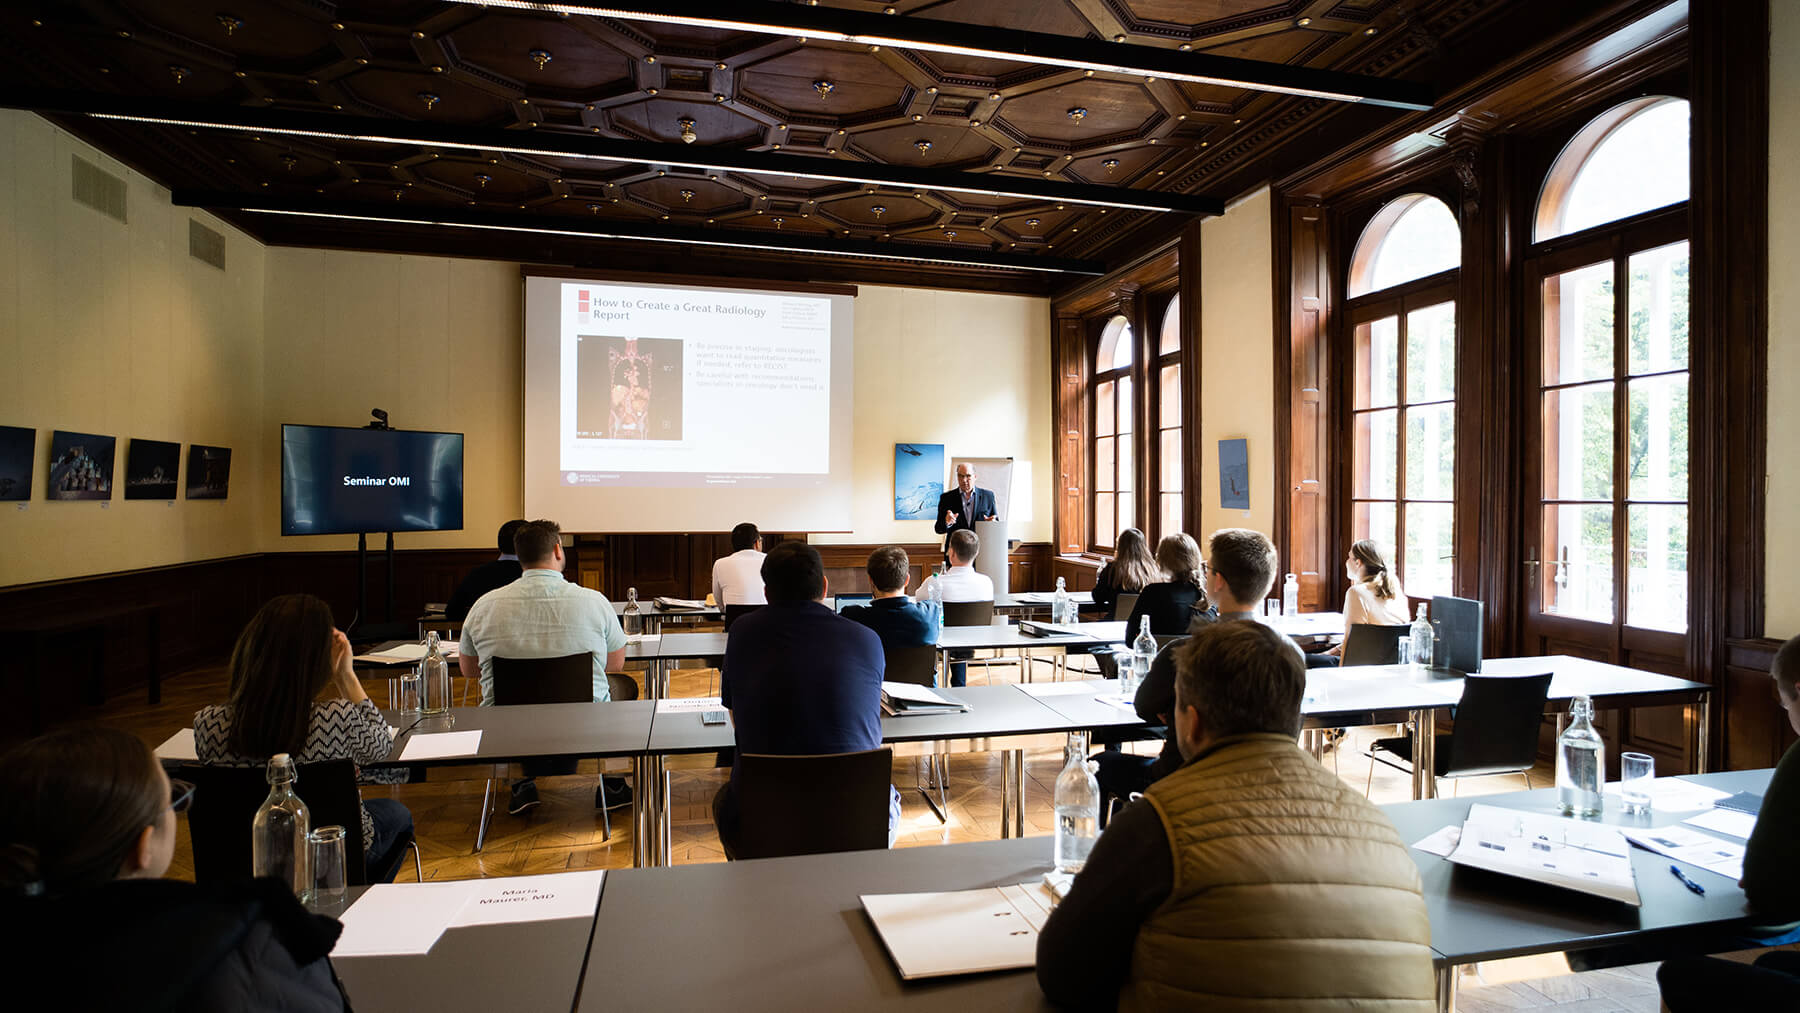 Lecture of Dr. Kainberger (Medical University of Innsbruck)